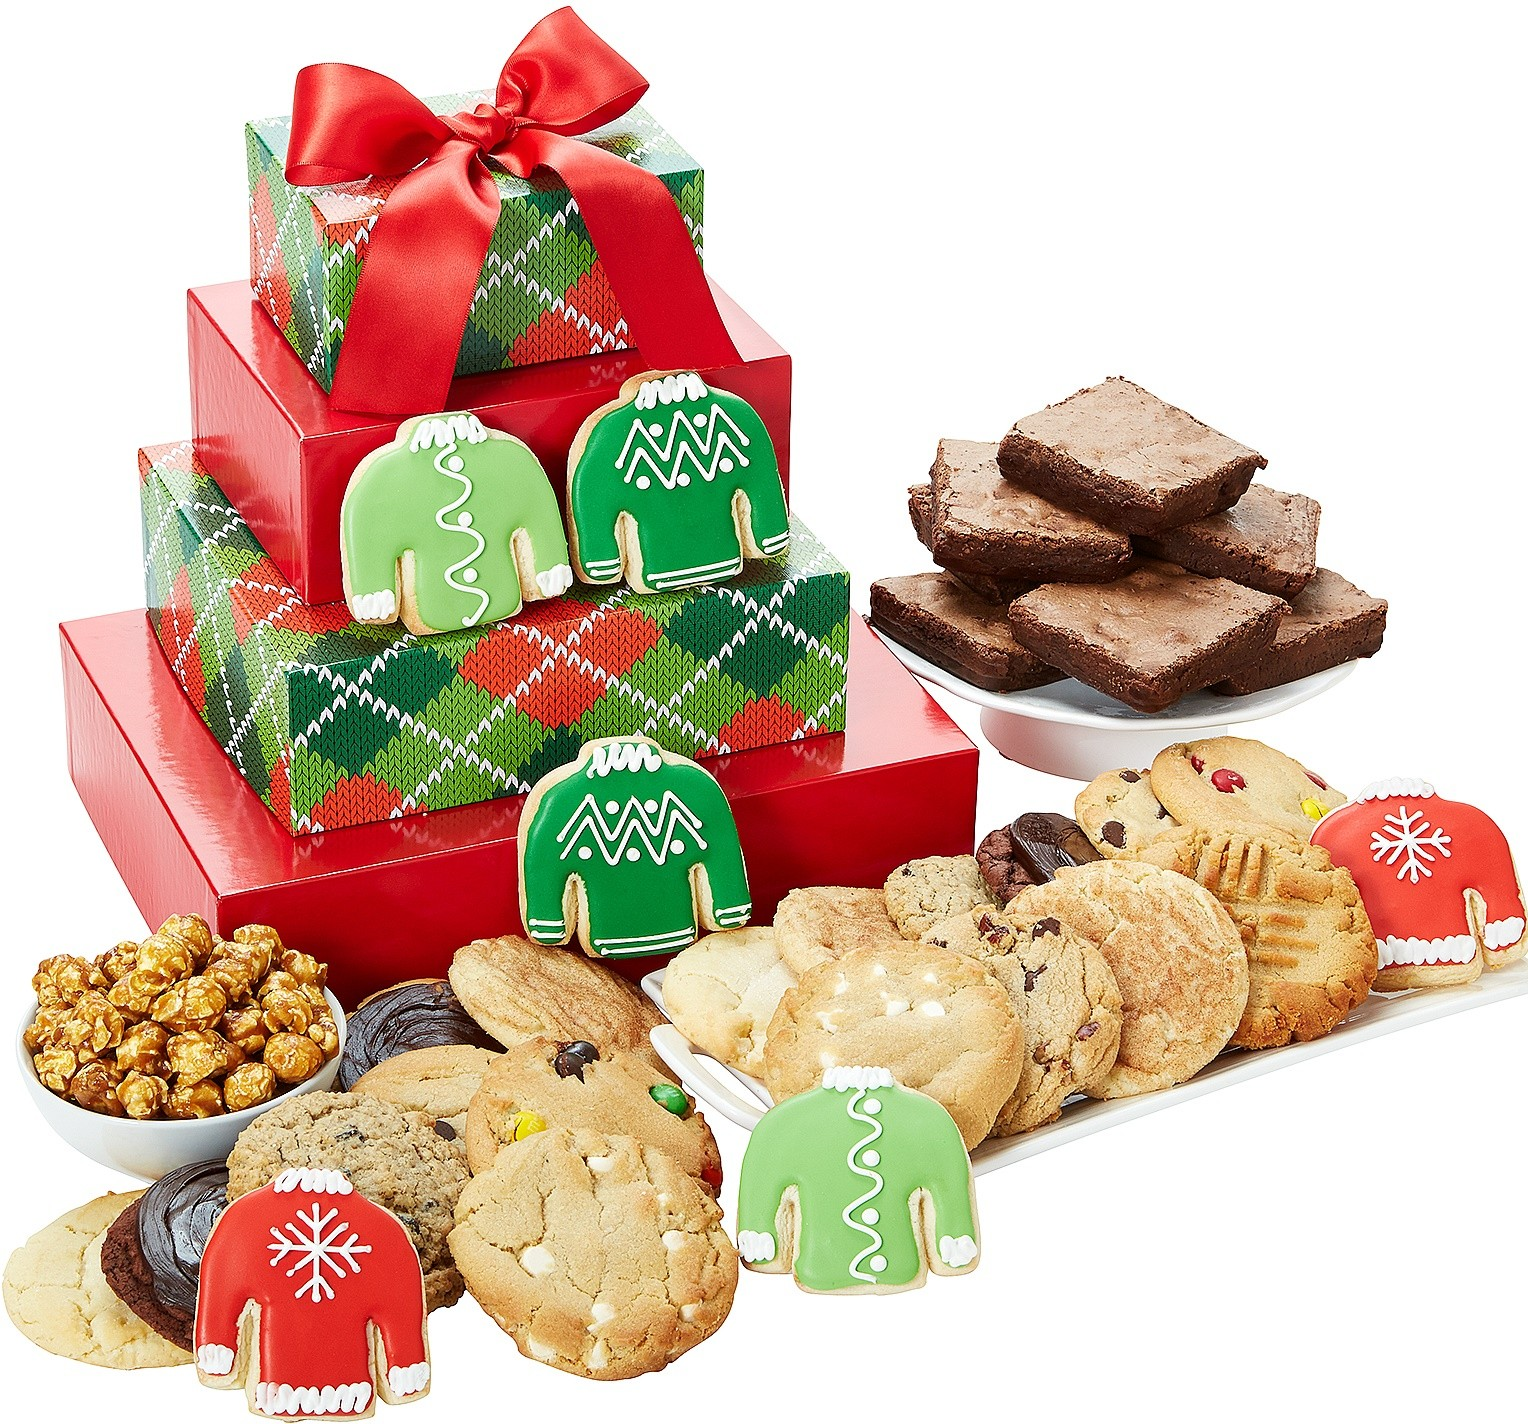 CHRISTMAS COOKIE GIFT TOWERS